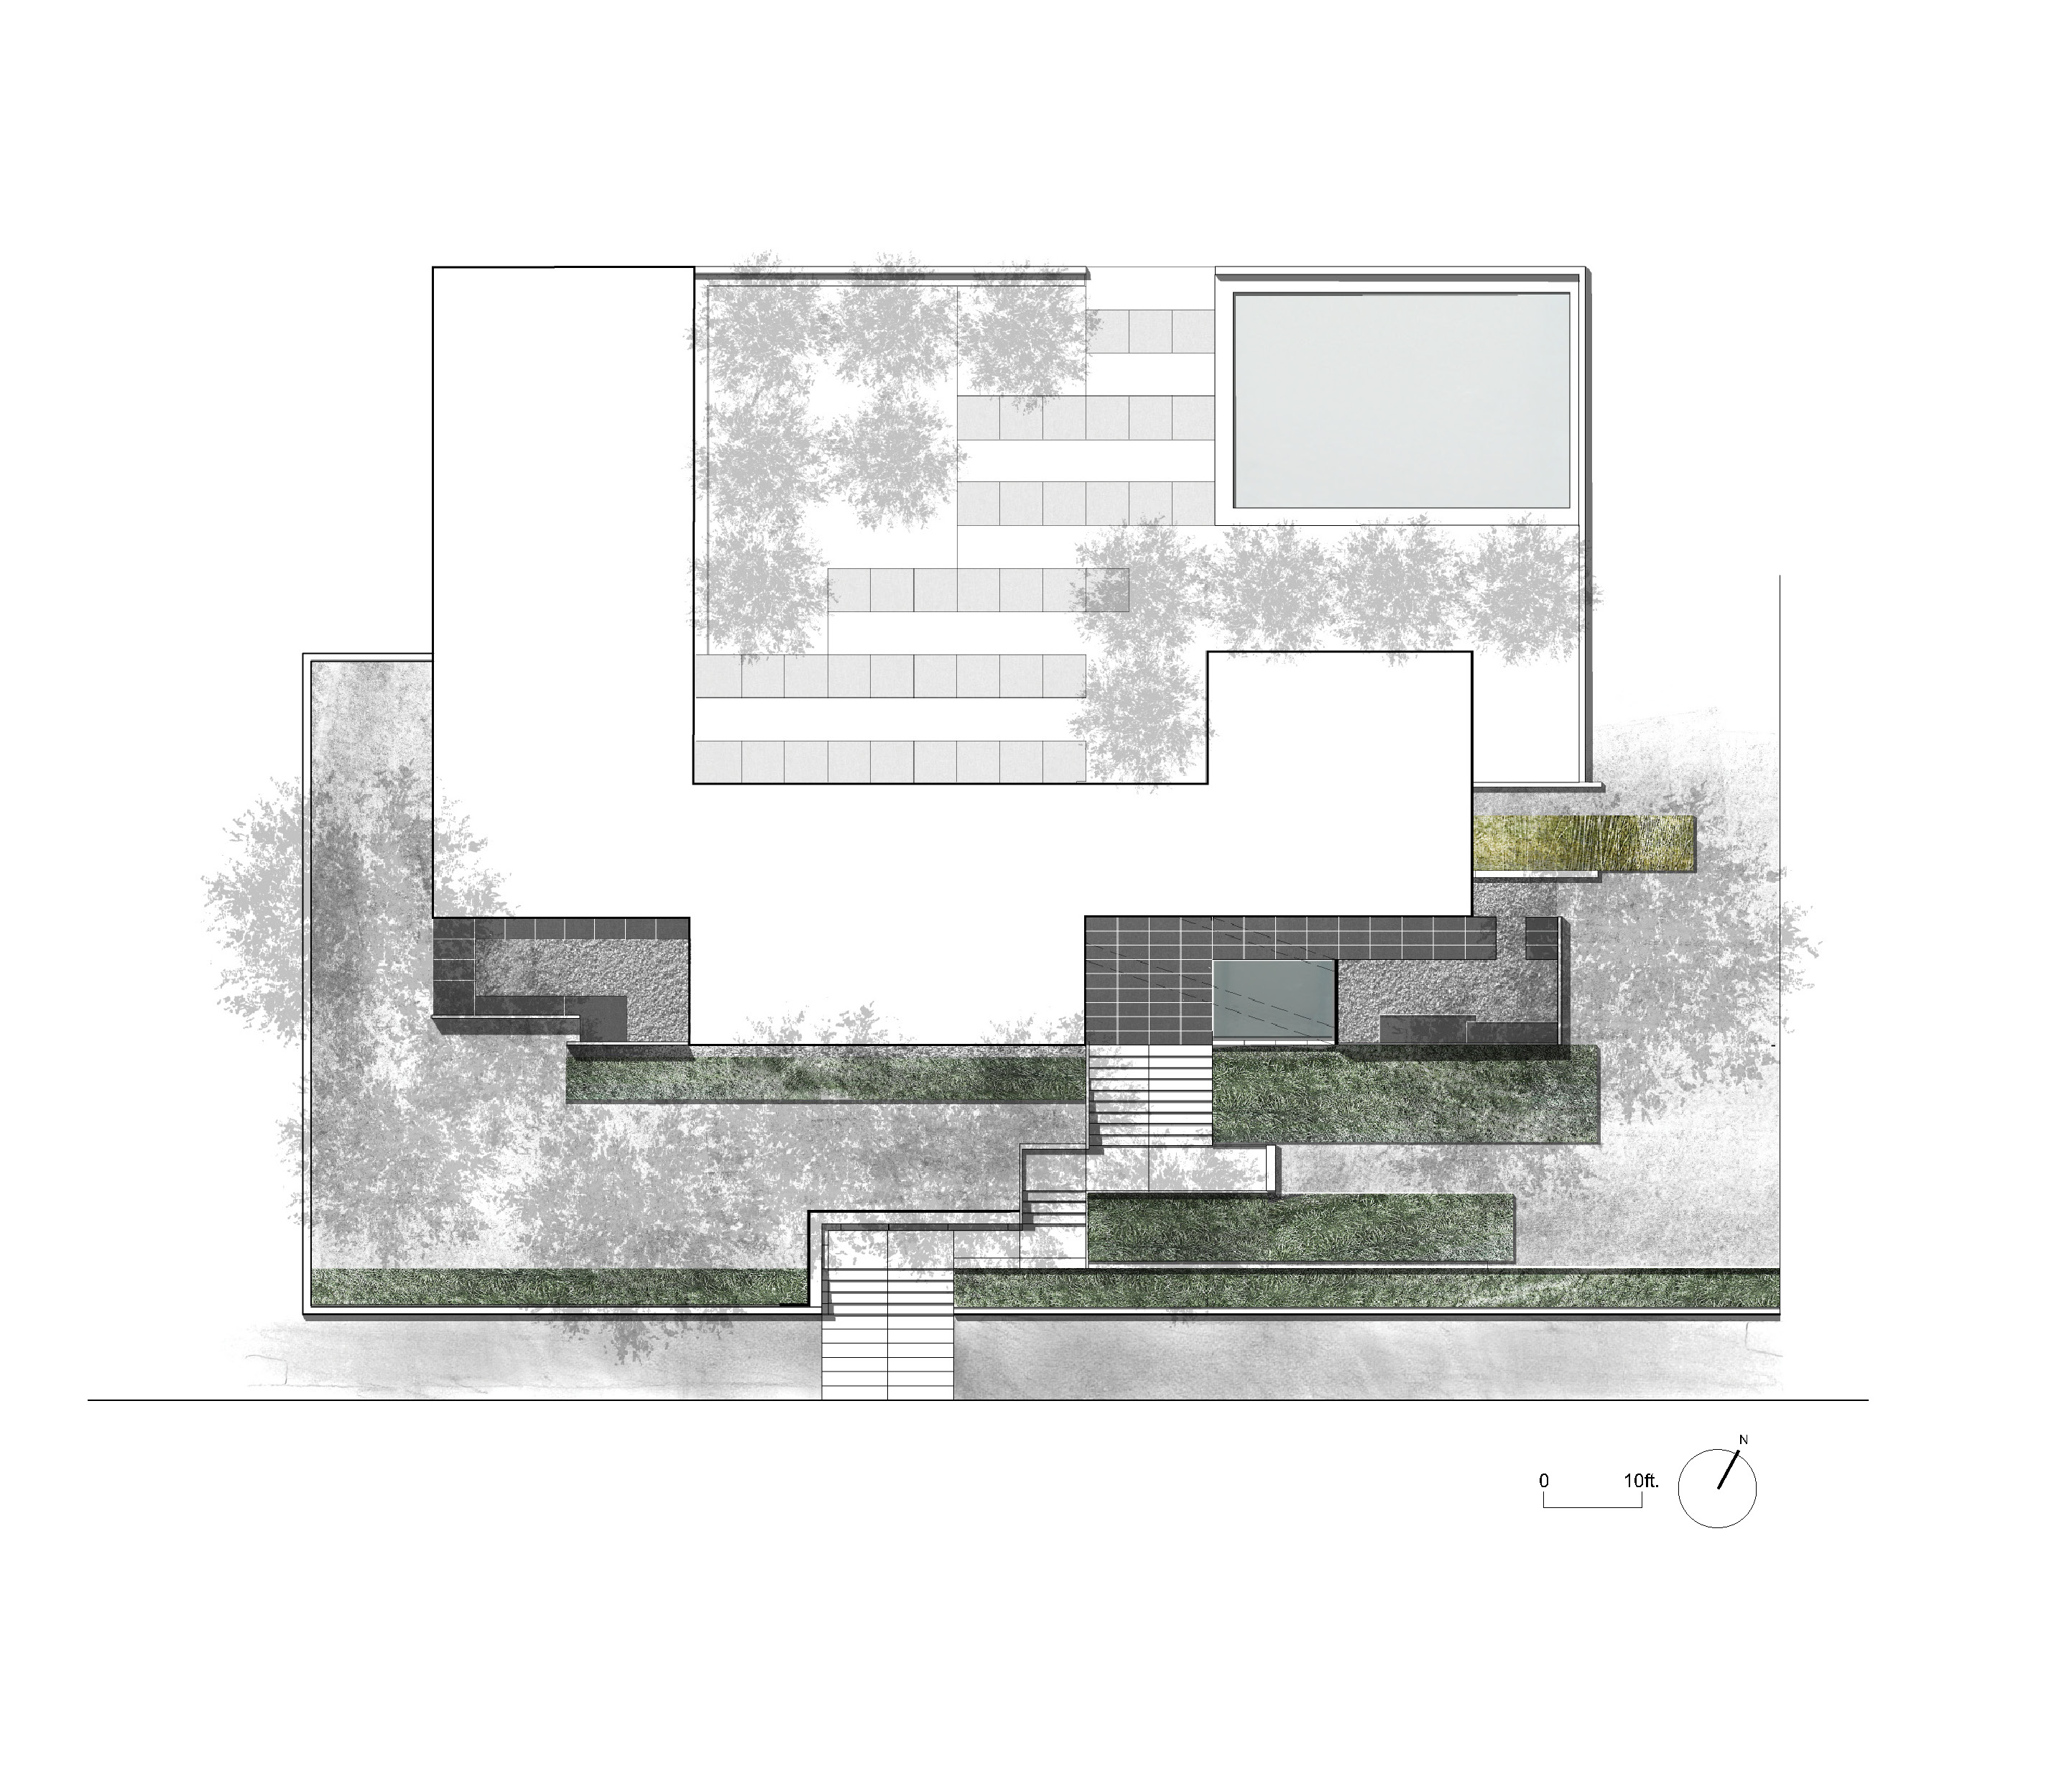 Asla 2011 professional awards peninsula residence for Site plan with landscape